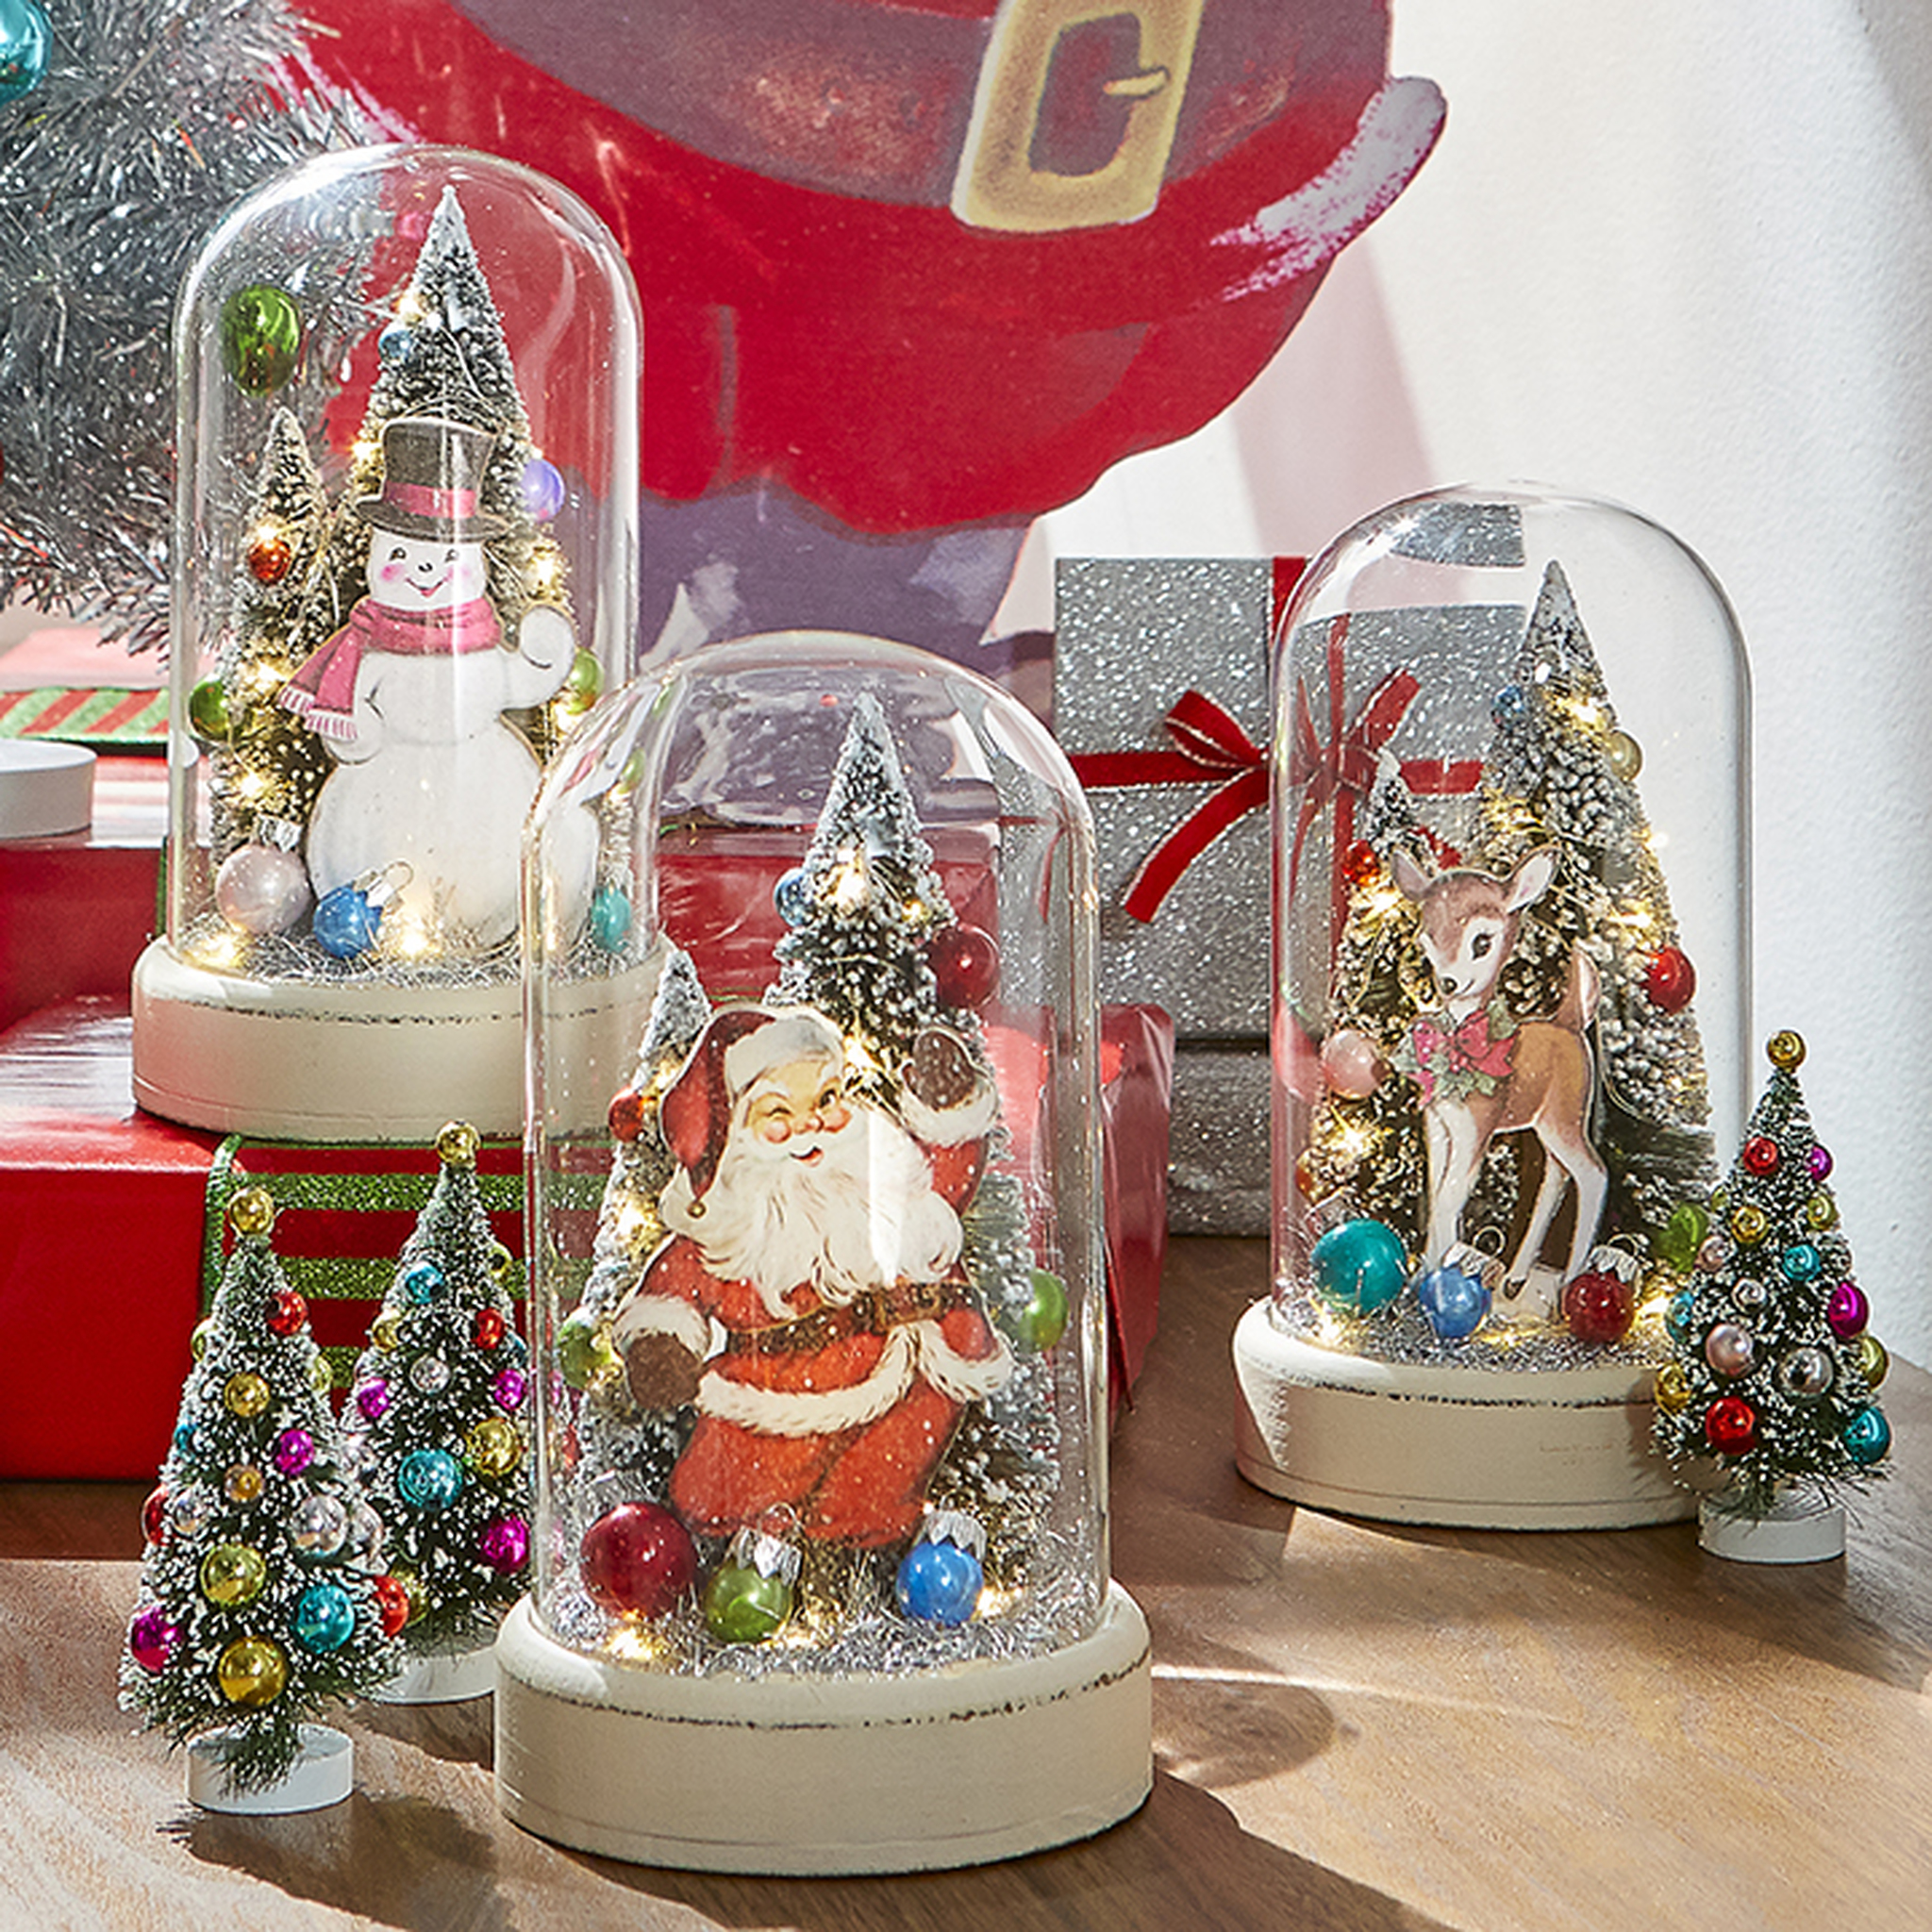 Christmas 2019 Trends.Top 9 2019 Christmas Decorating Trends The Jolly Christmas